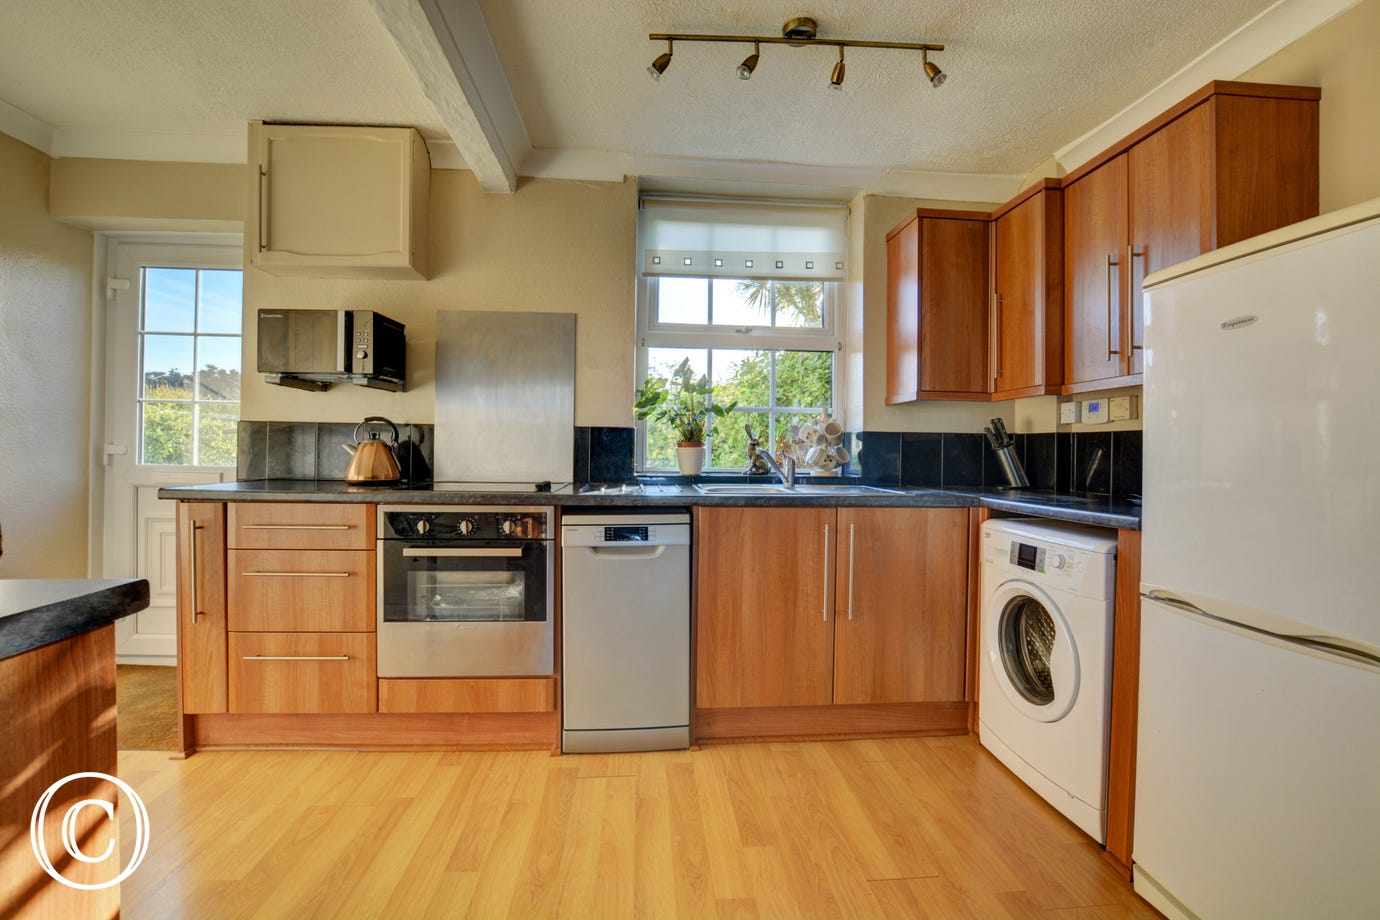 Well equipped kitchen with electric oven